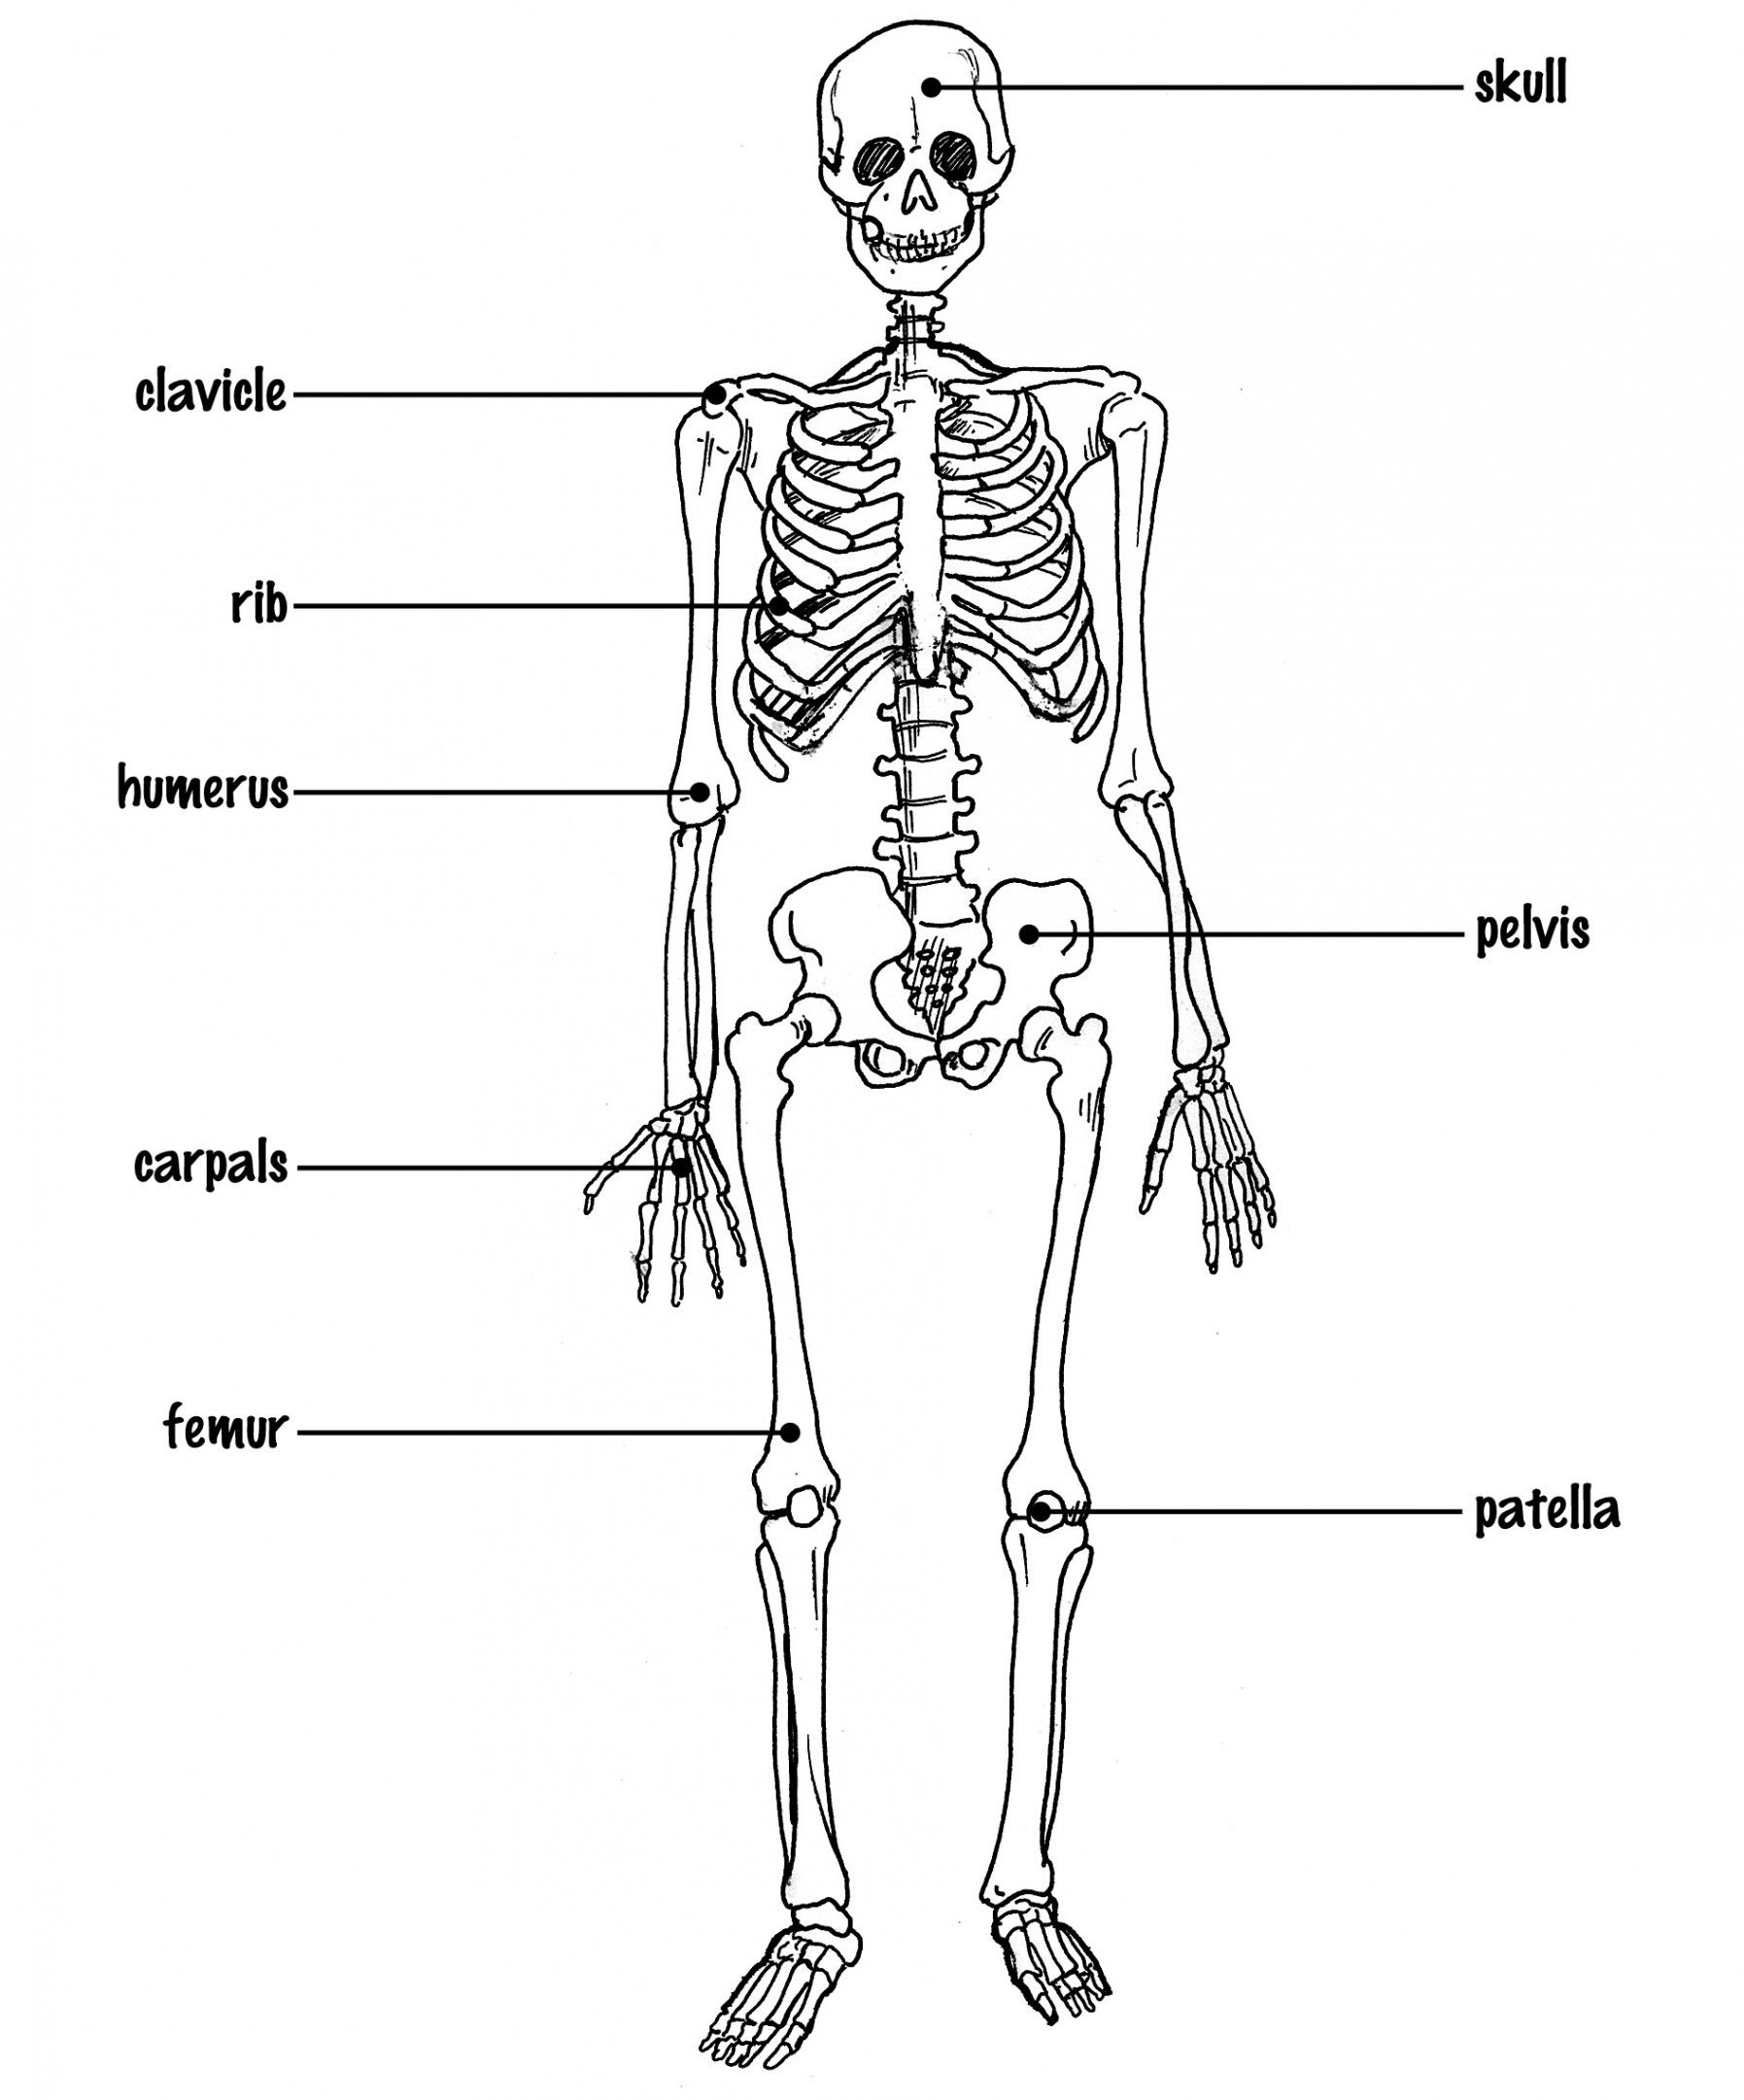 hight resolution of unlabeled human skeleton diagram unlabeled human skeleton diagram blank human skeleton stream the awesome web